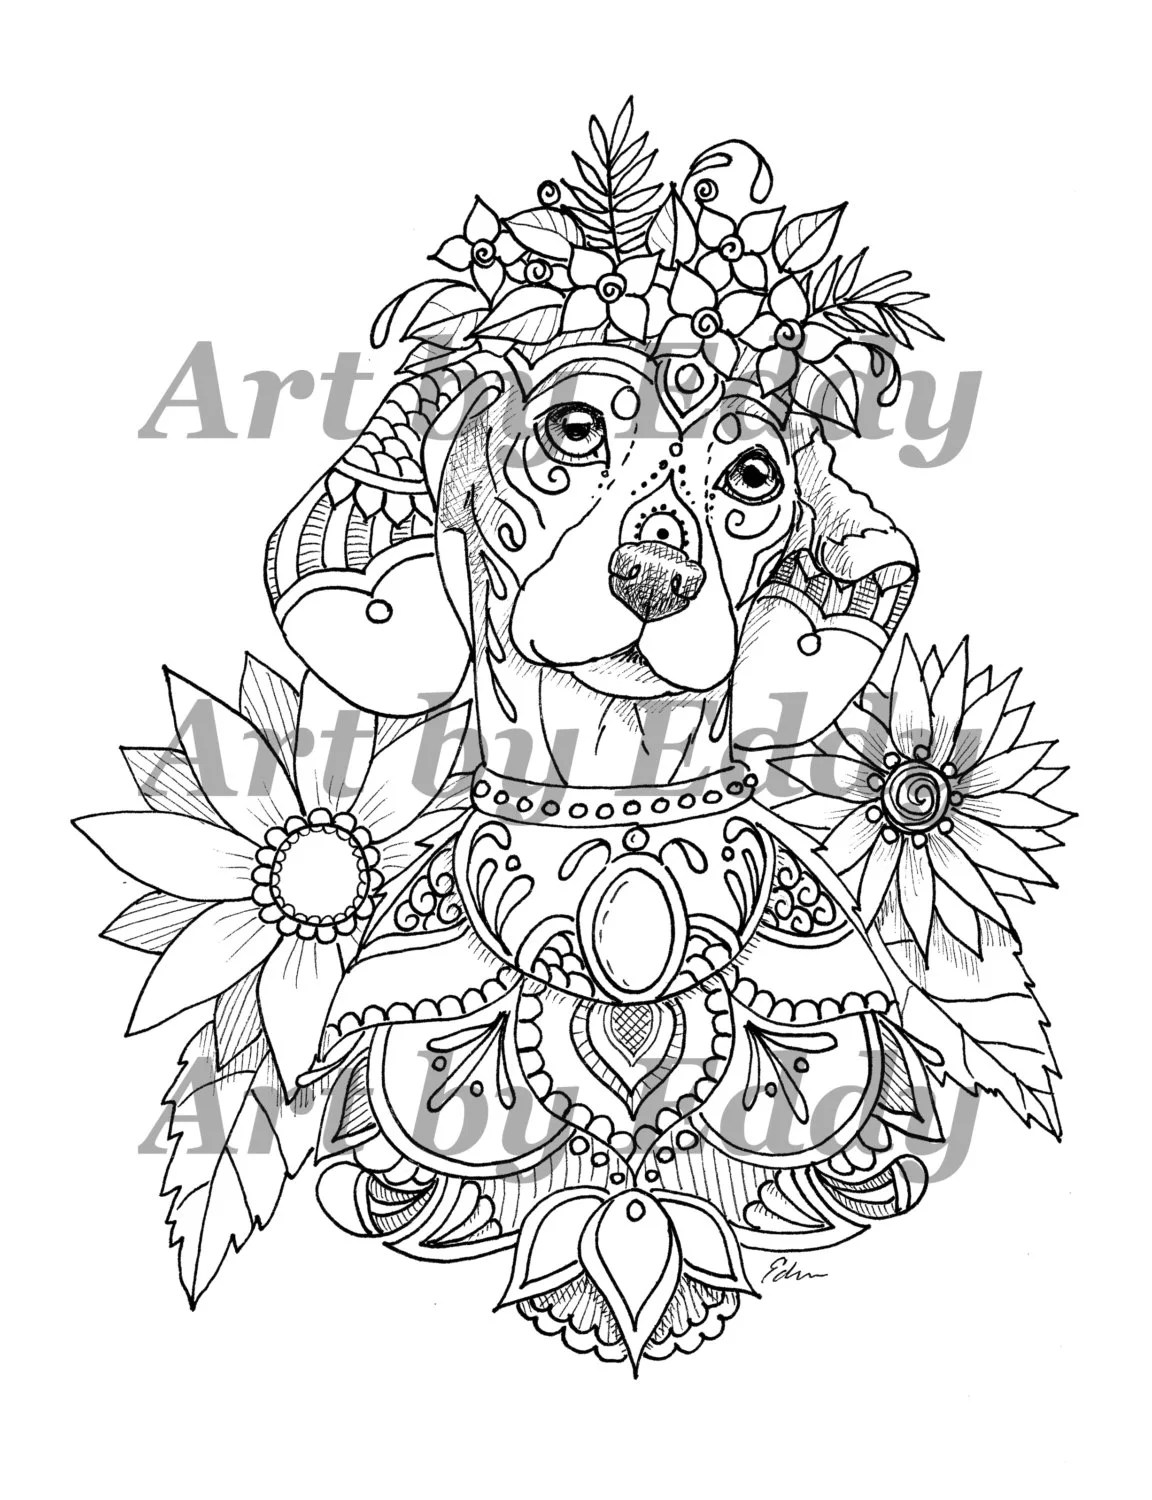 Art of Dachshund Coloring Book Volume No. 2 Physical Book